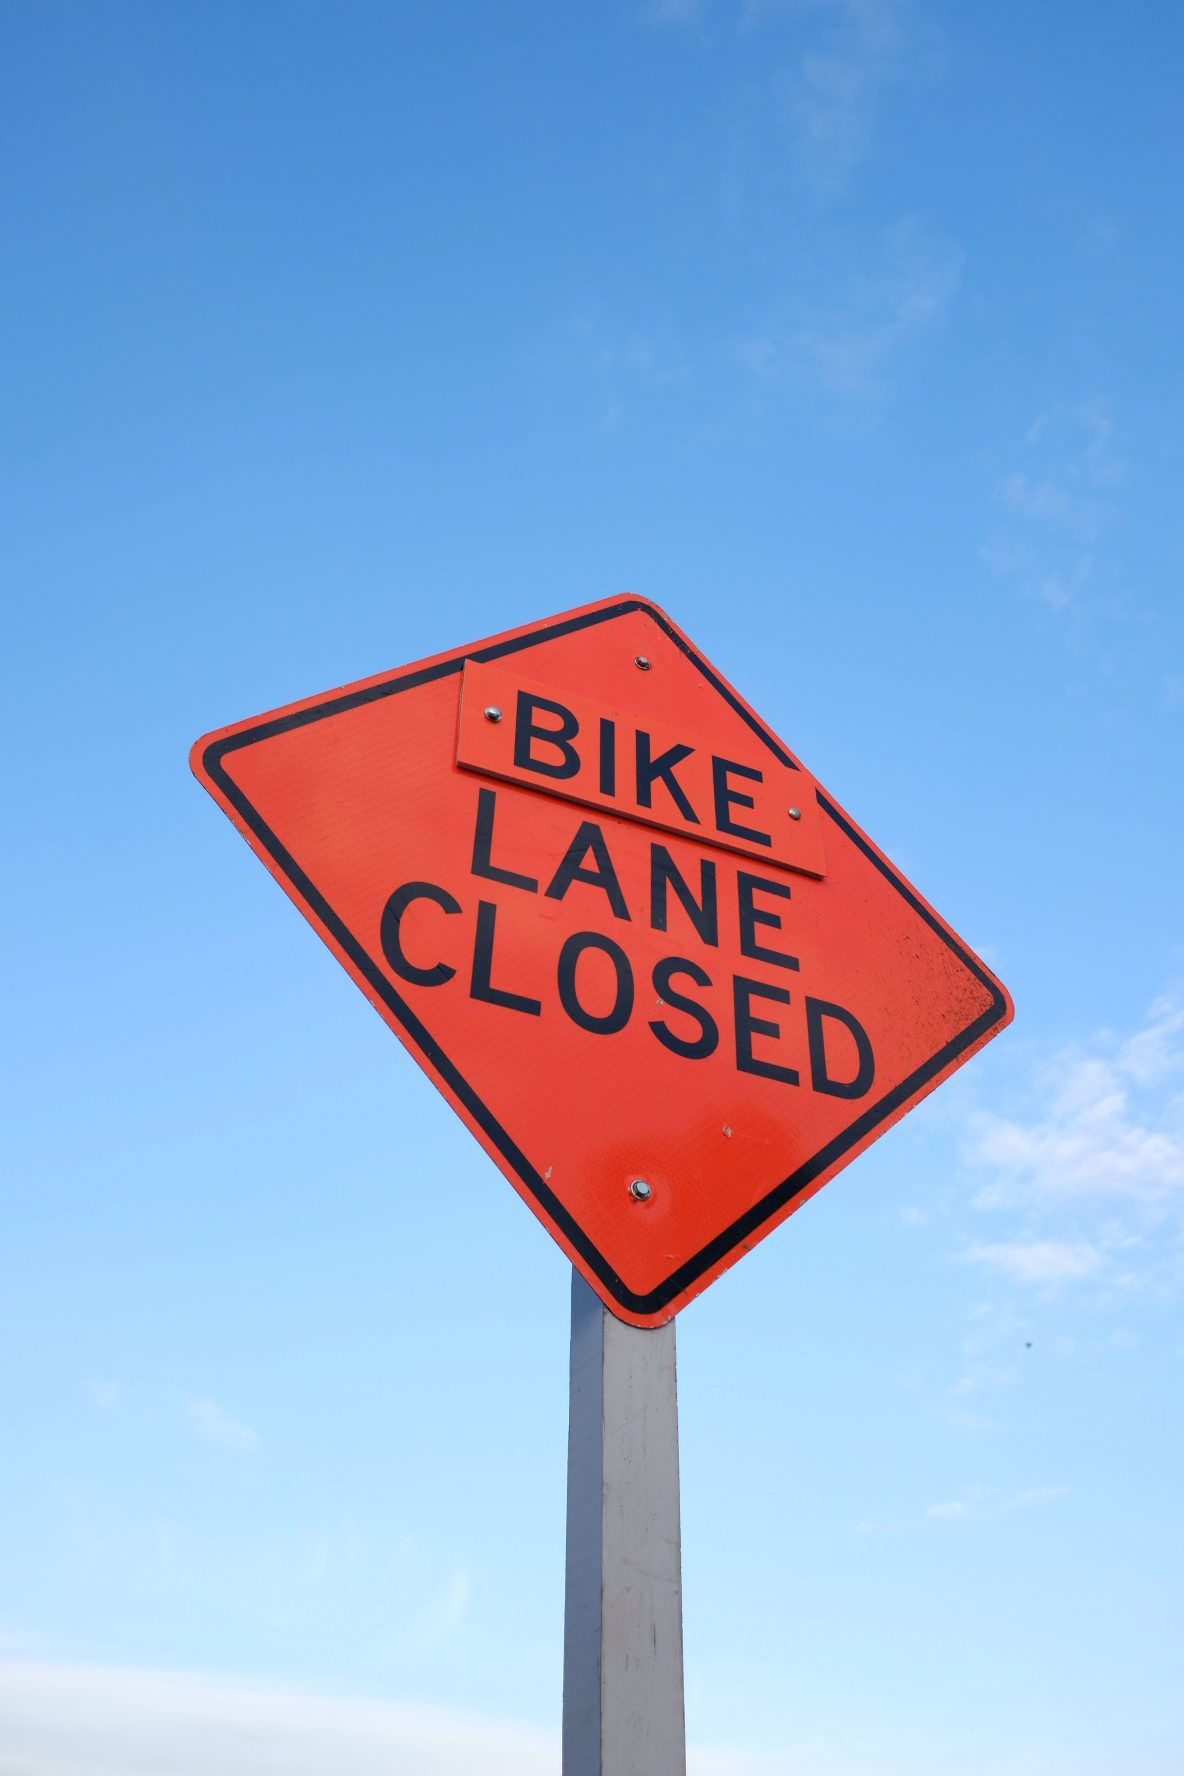 A sign posted informing cyclists that an upcoming bike lane is closed.